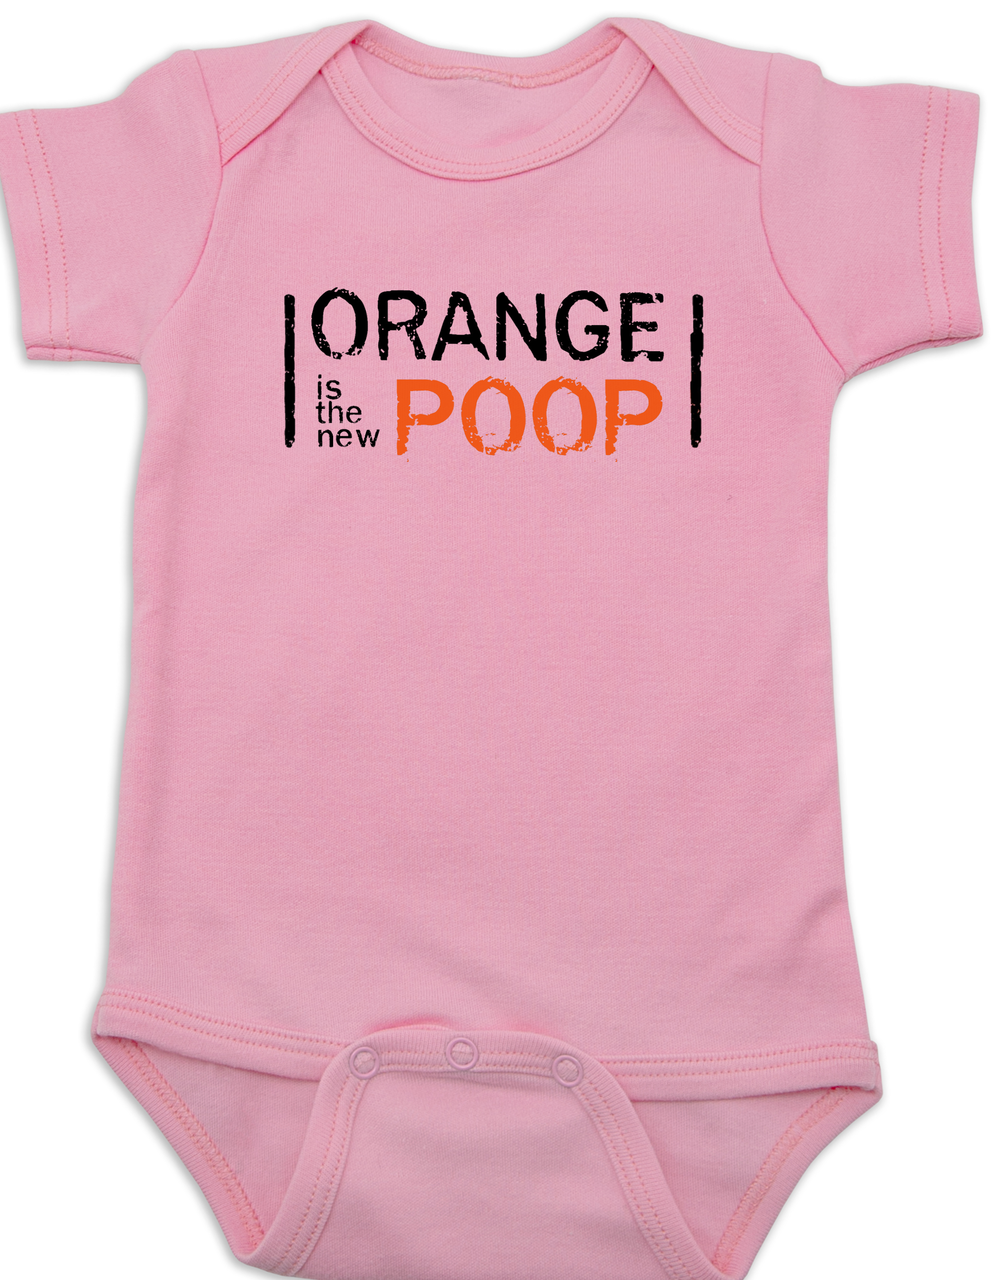 unisex baby bodysuit Orange Is The New Black baby onesie I/'m watching tv with mommy mommy onesie t.v show shirt Orange Is The New Black